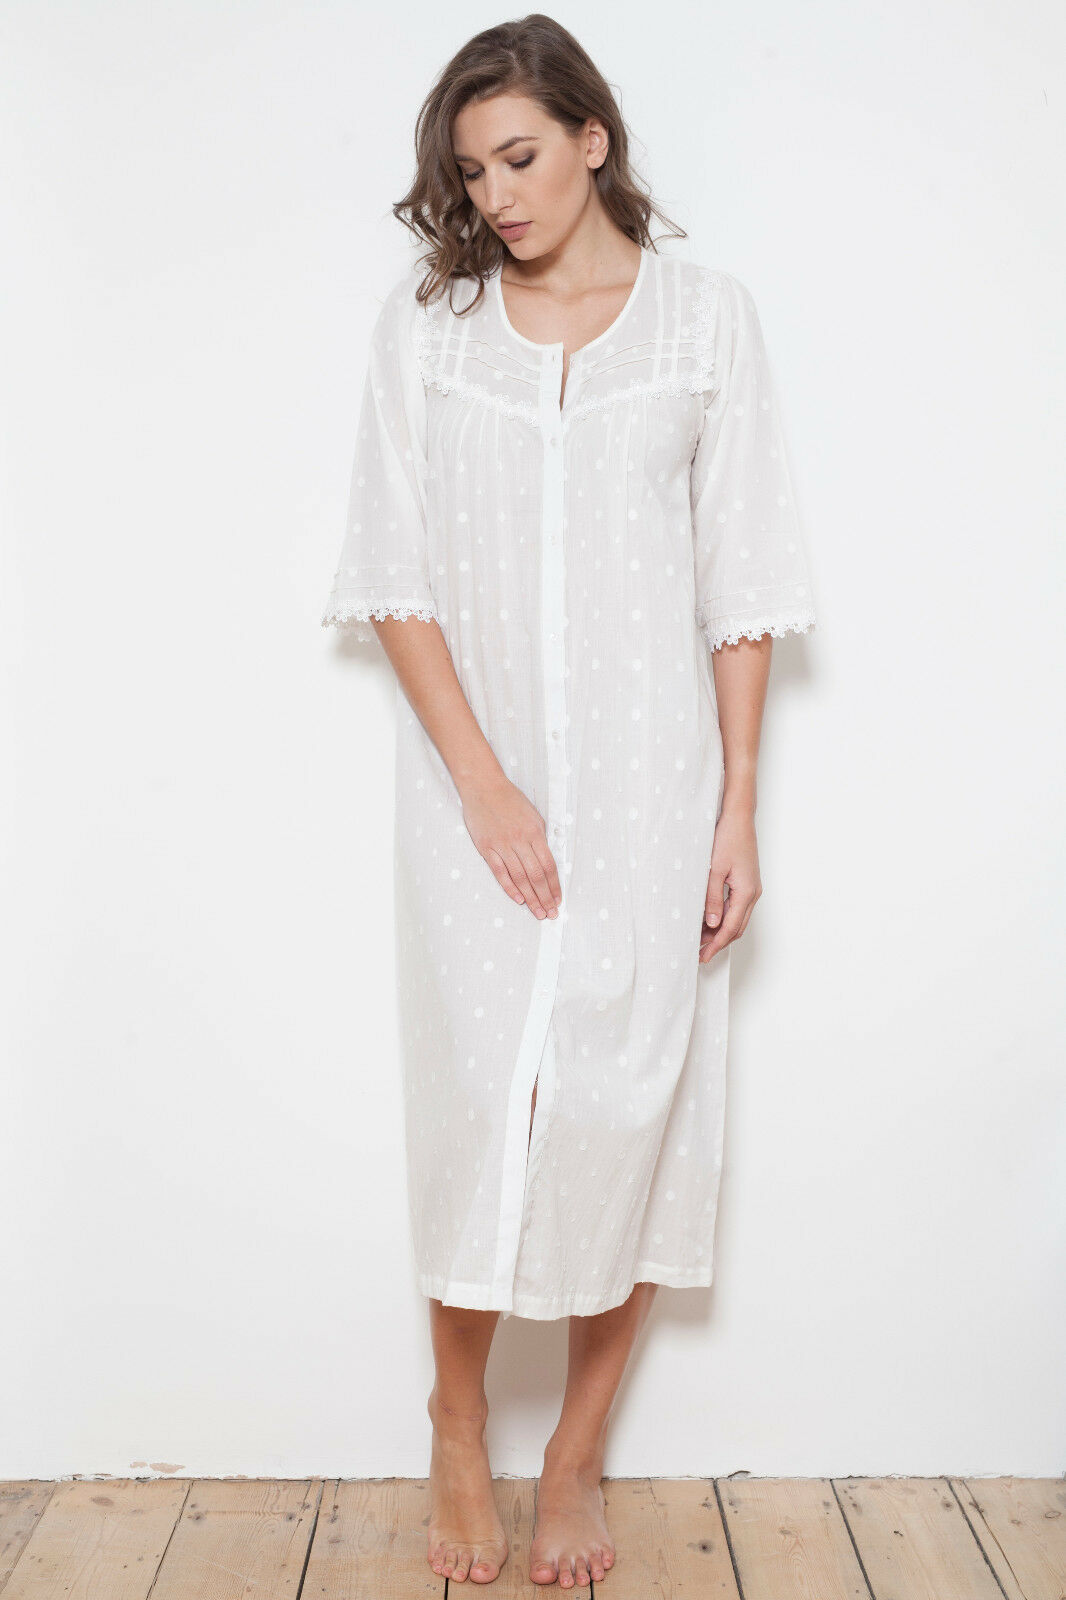 Cottonreal 'Noel' 100% Cotton Polka Dot Button Through Nightdress  Housecoat